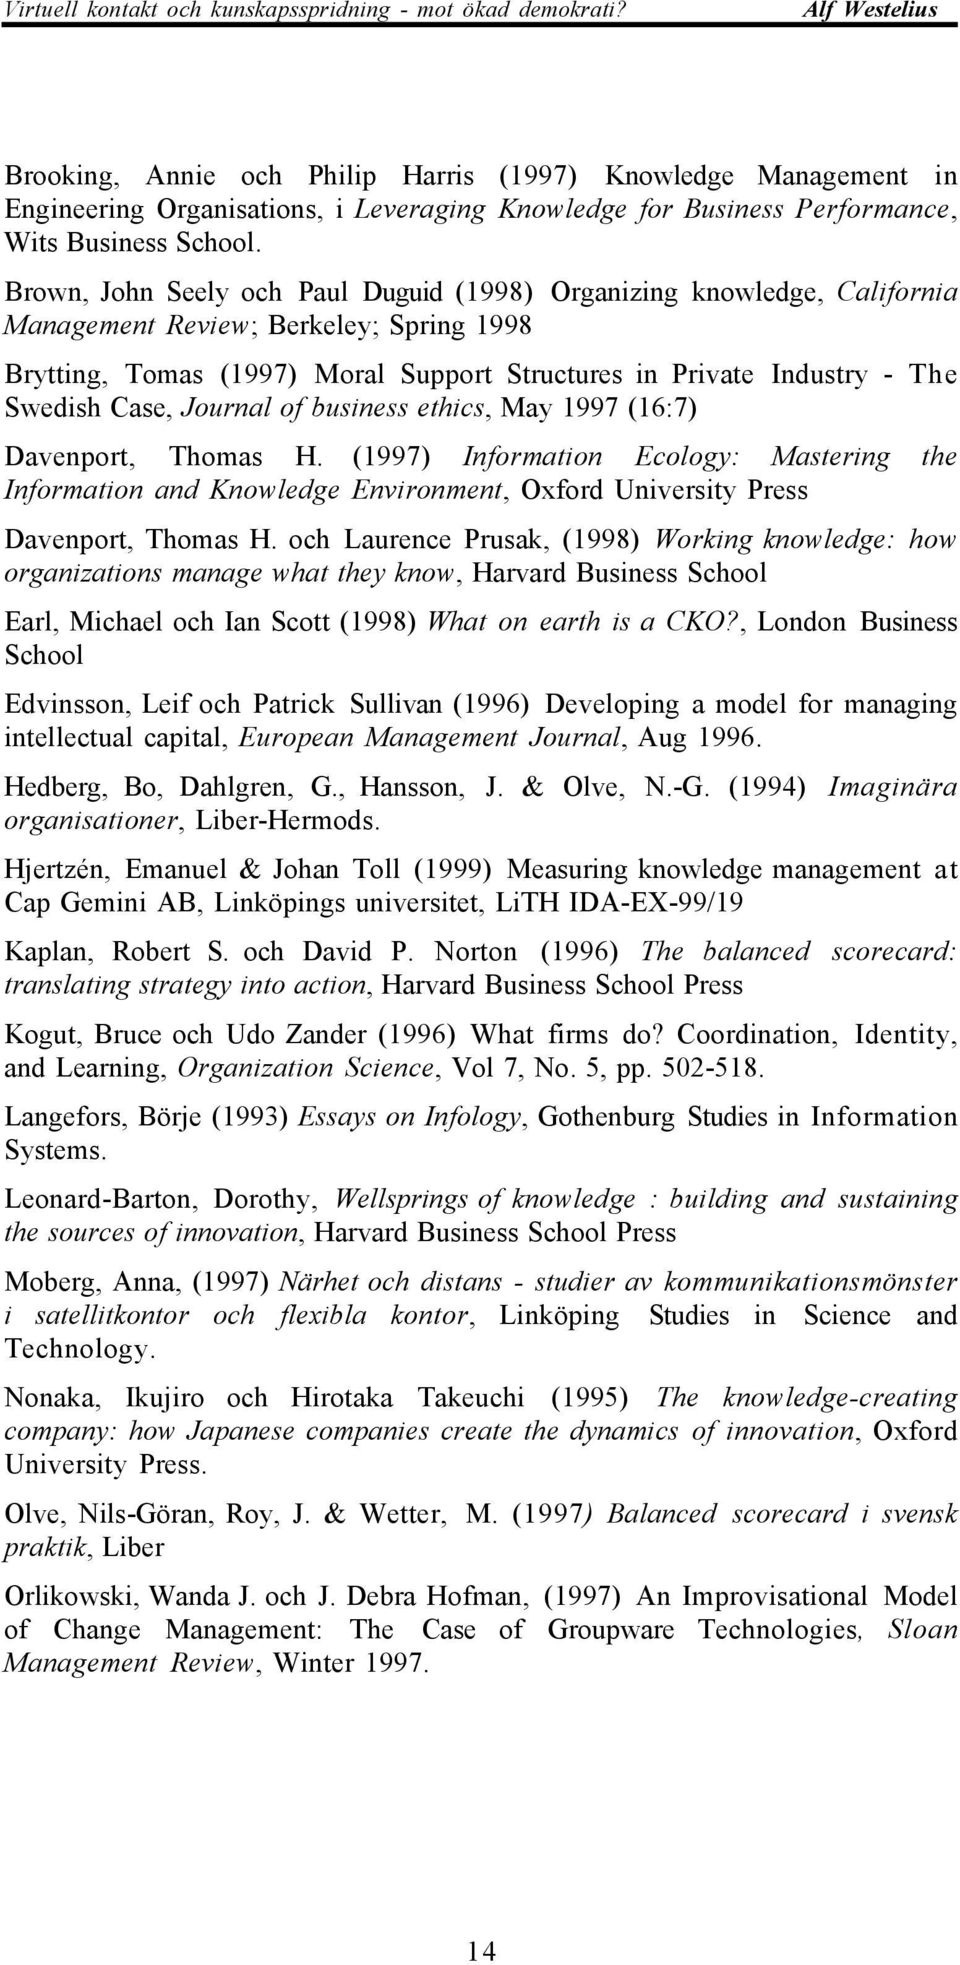 Case, Journal of business ethics, May 1997 (16:7) Davenport, Thomas H. (1997) Information Ecology: Mastering the Information and Knowledge Environment, Oxford University Press Davenport, Thomas H.